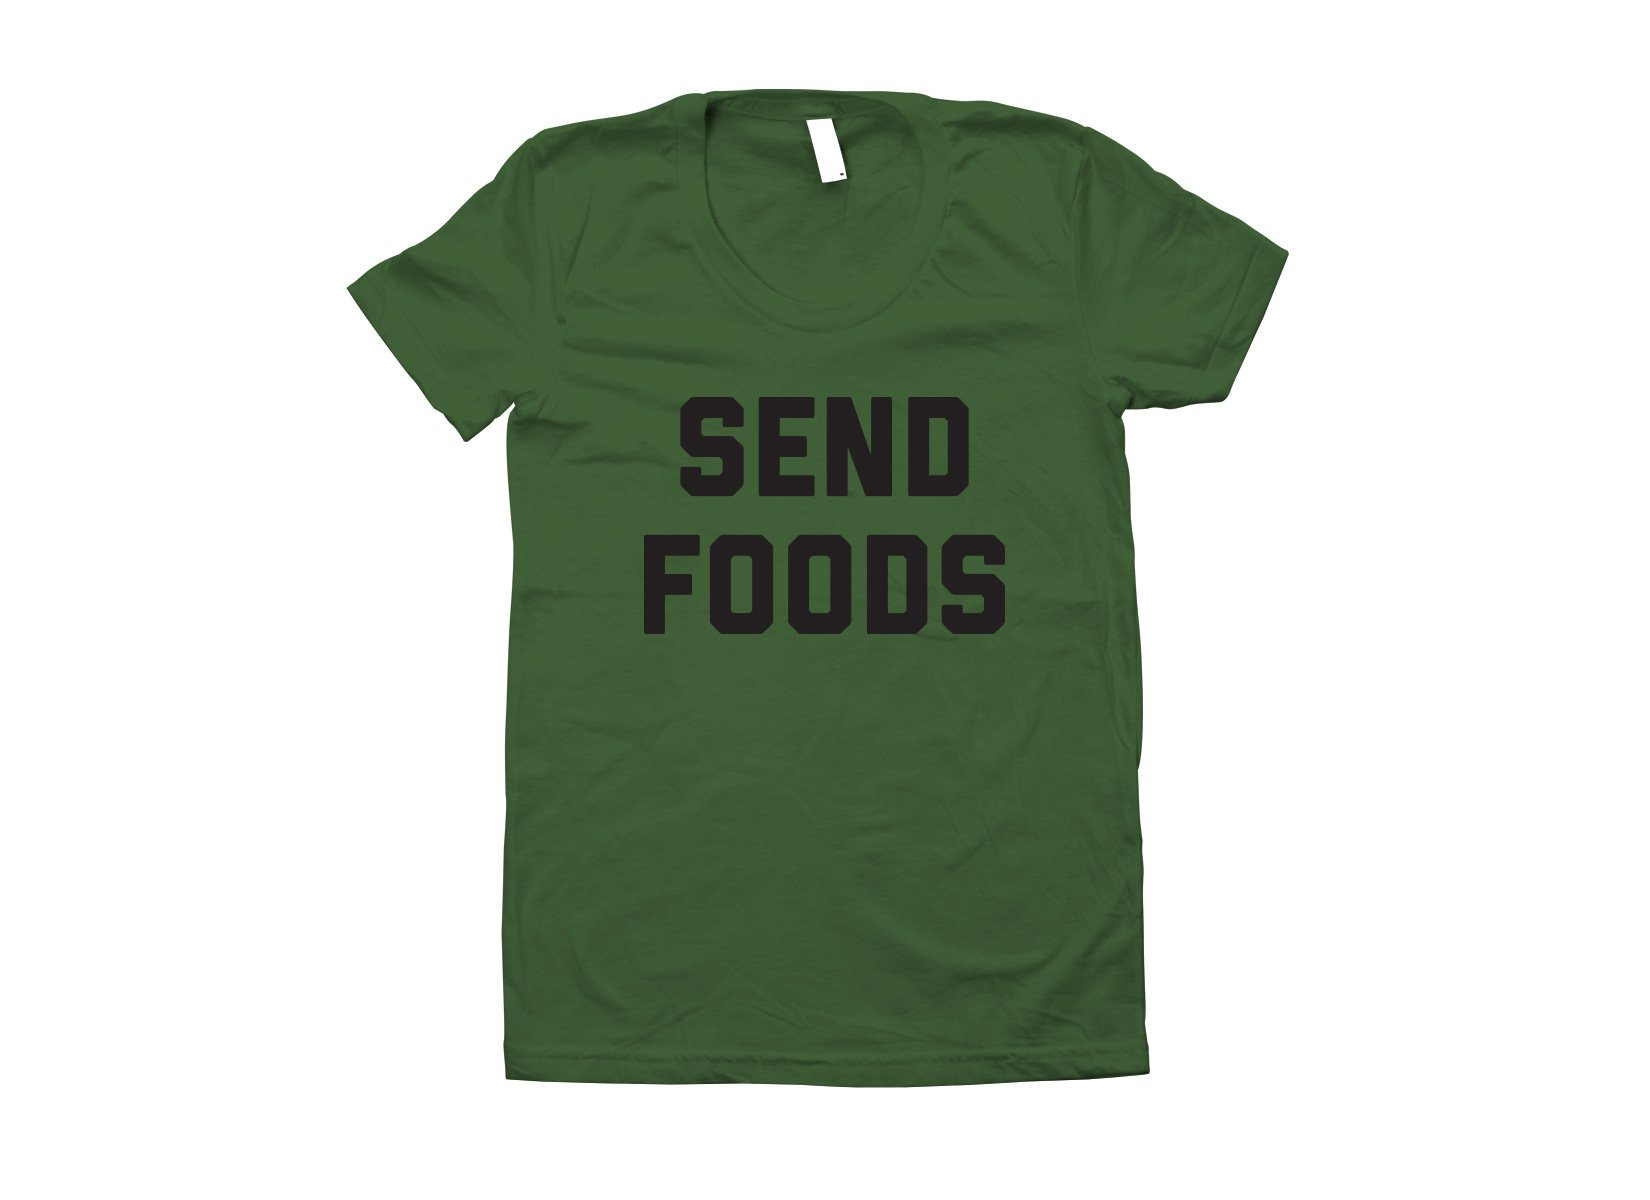 Send Foods on Juniors T-Shirt